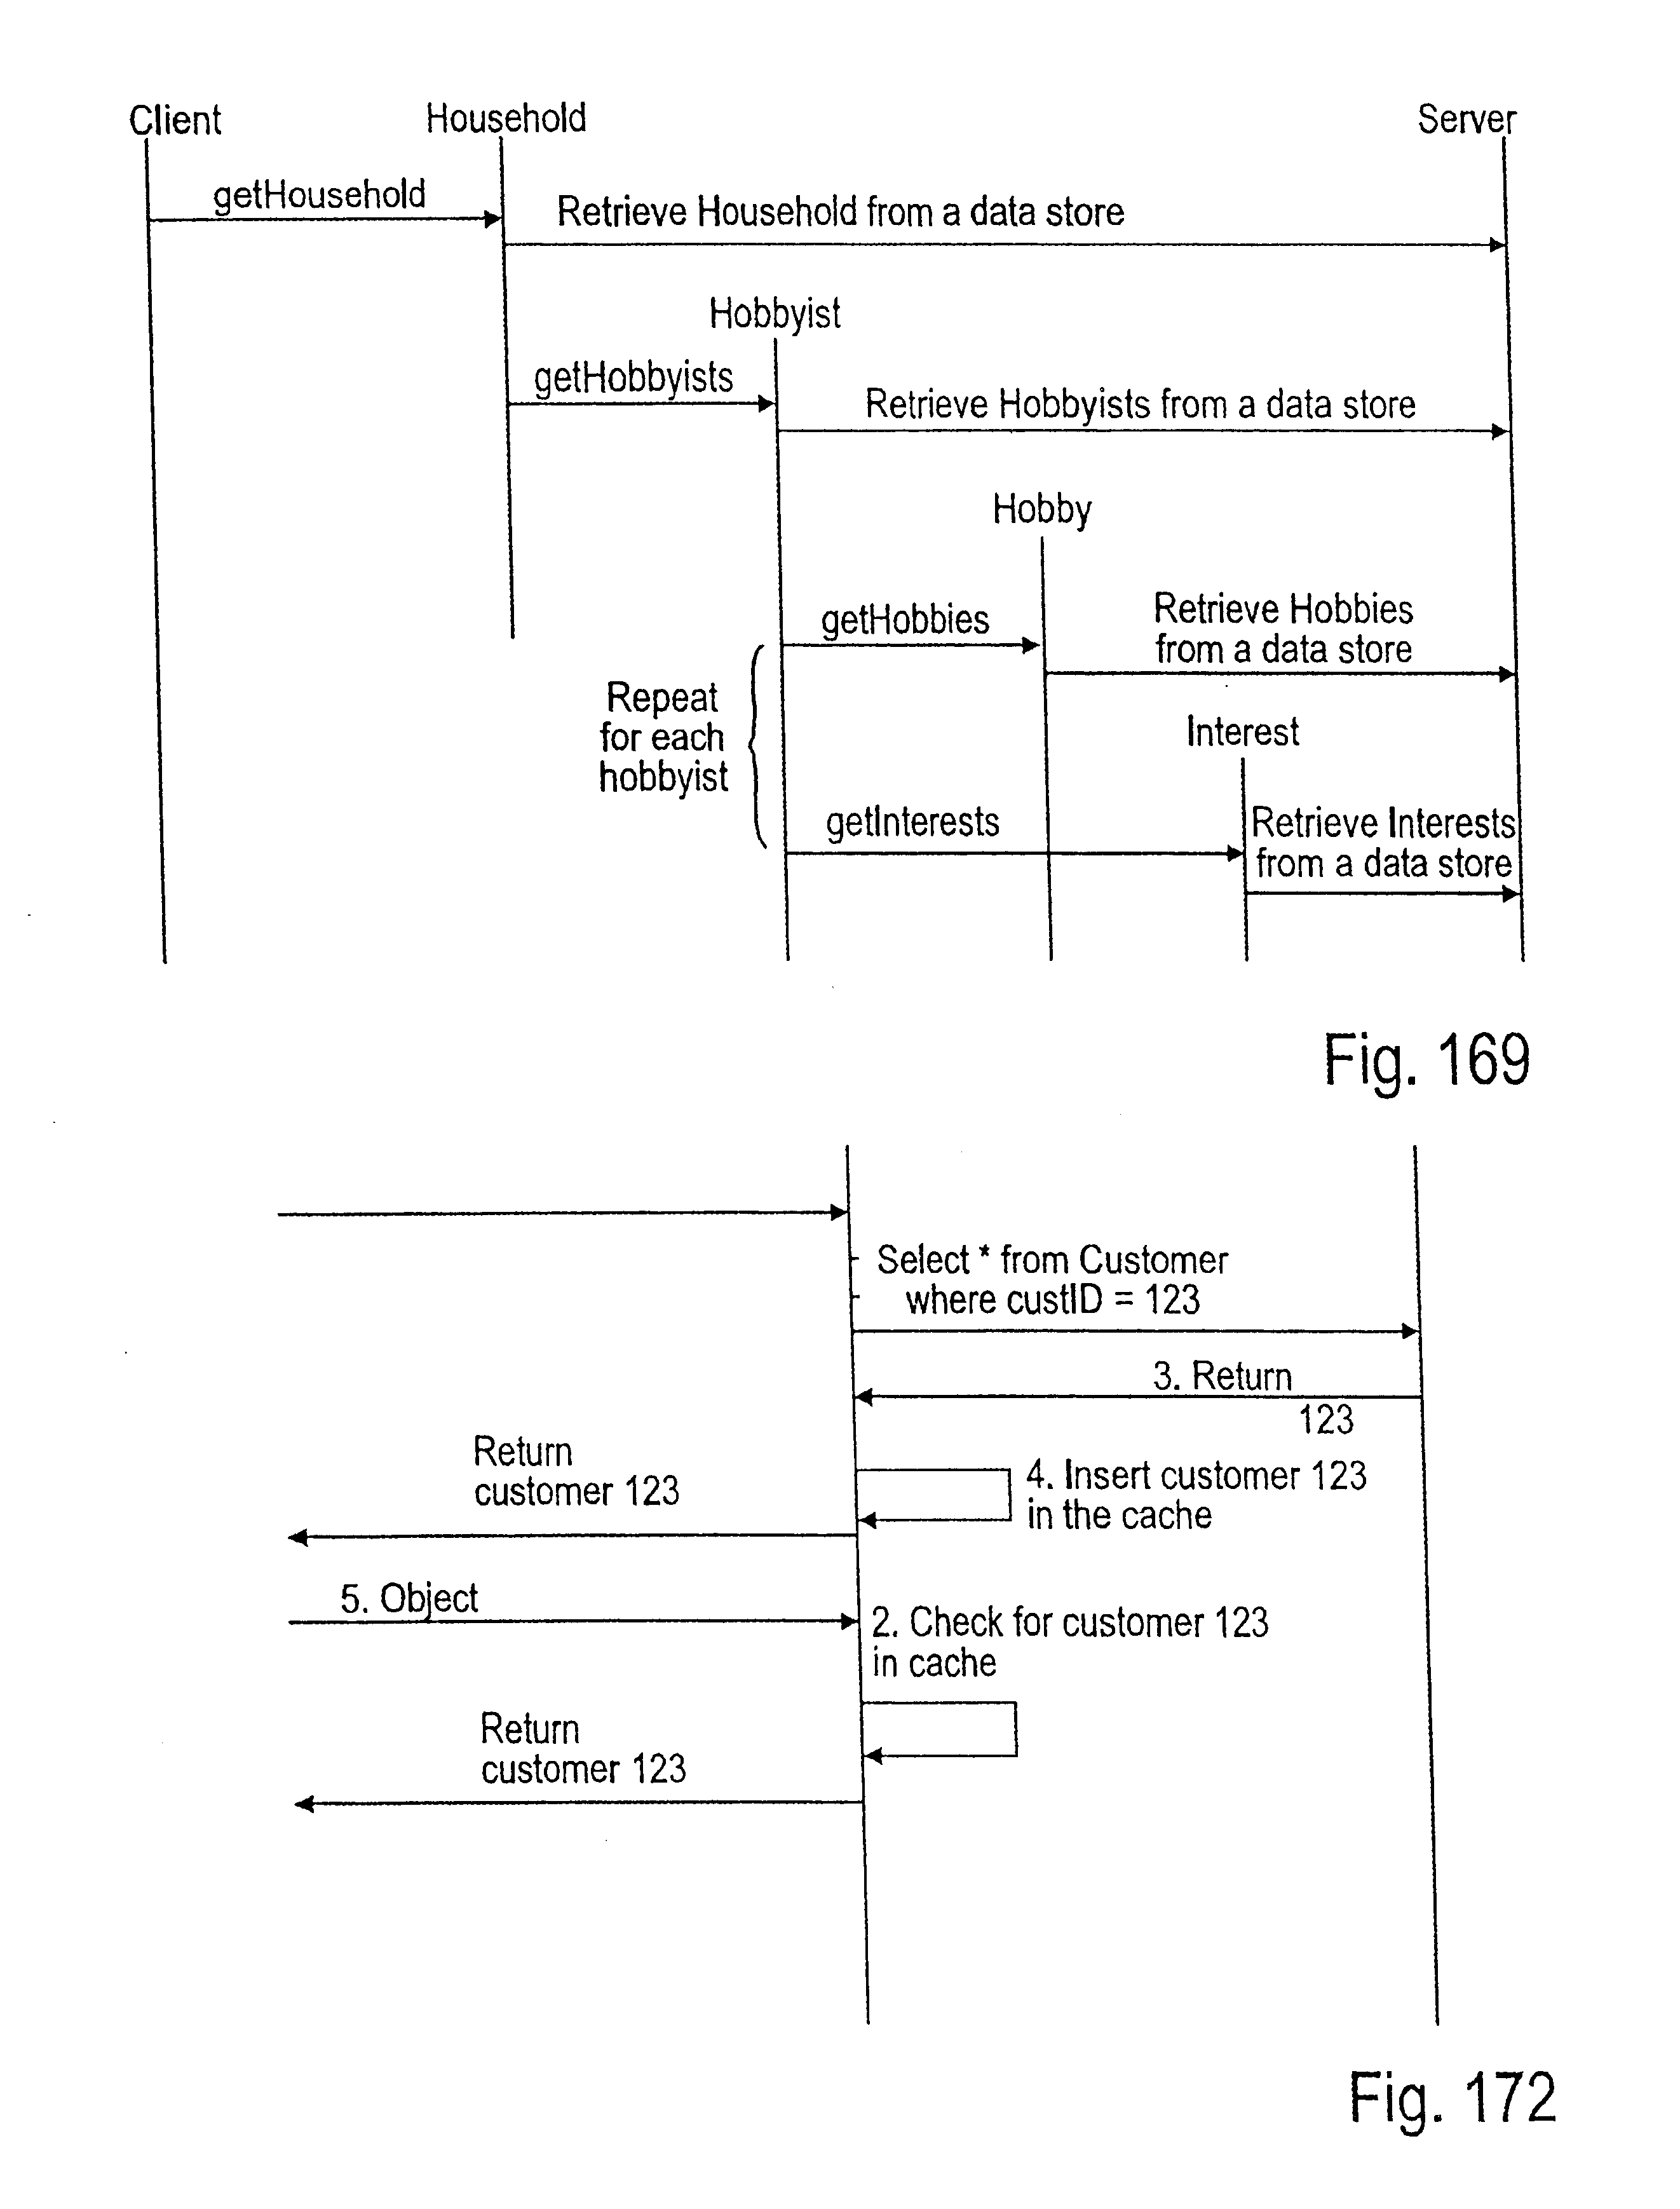 Patent Us 6529948 B1 Diagram Moreover Dip Switch Settings In Addition Cat 5 Crossover Cable Images